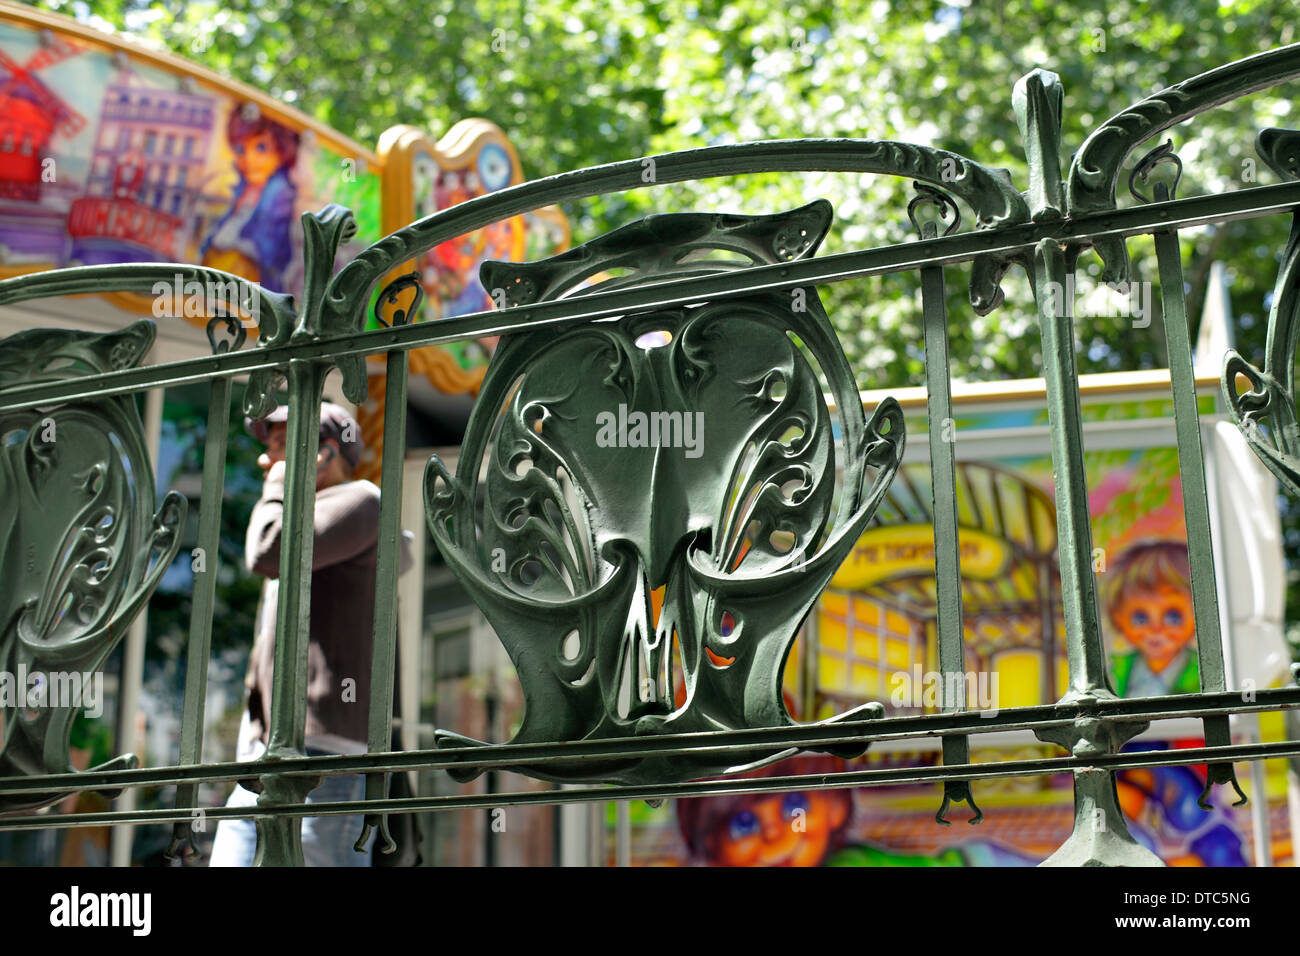 Art Nouveau railings outside the entrance to the Abbesses metro station, Paris. - Stock Image